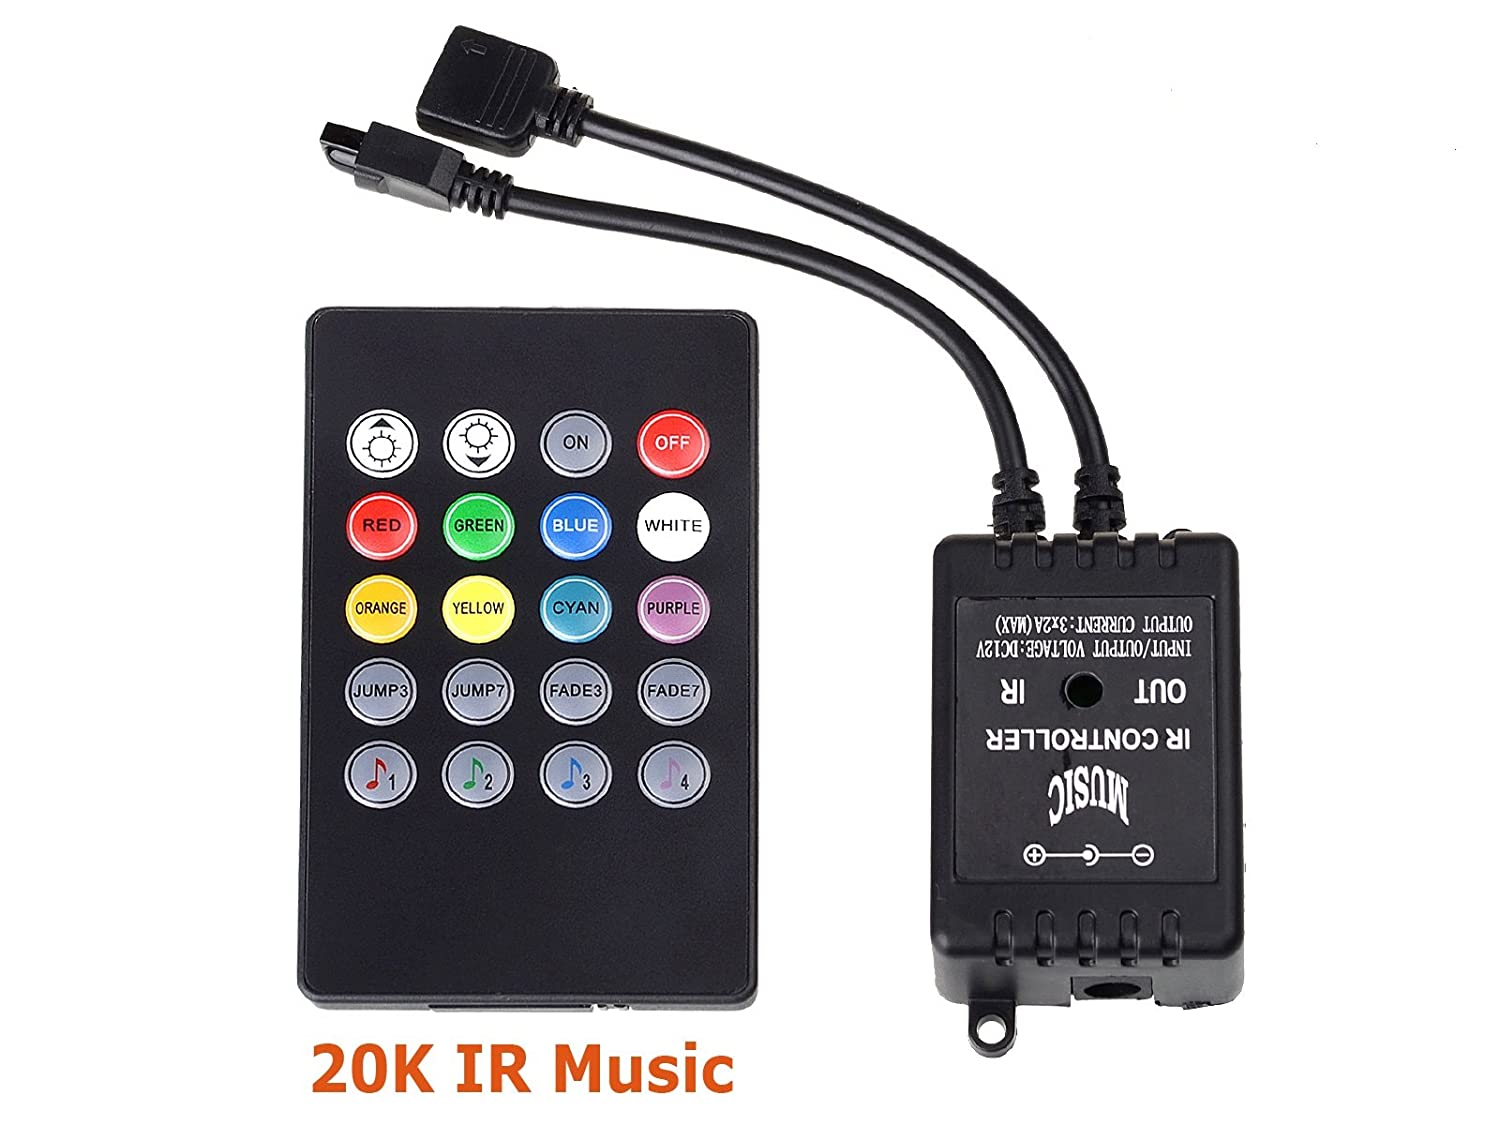 taotronics tt-sl030 led strip light ir remote music controller 20 key for  rgb 5050 led light strip: amazon co uk: kitchen & home